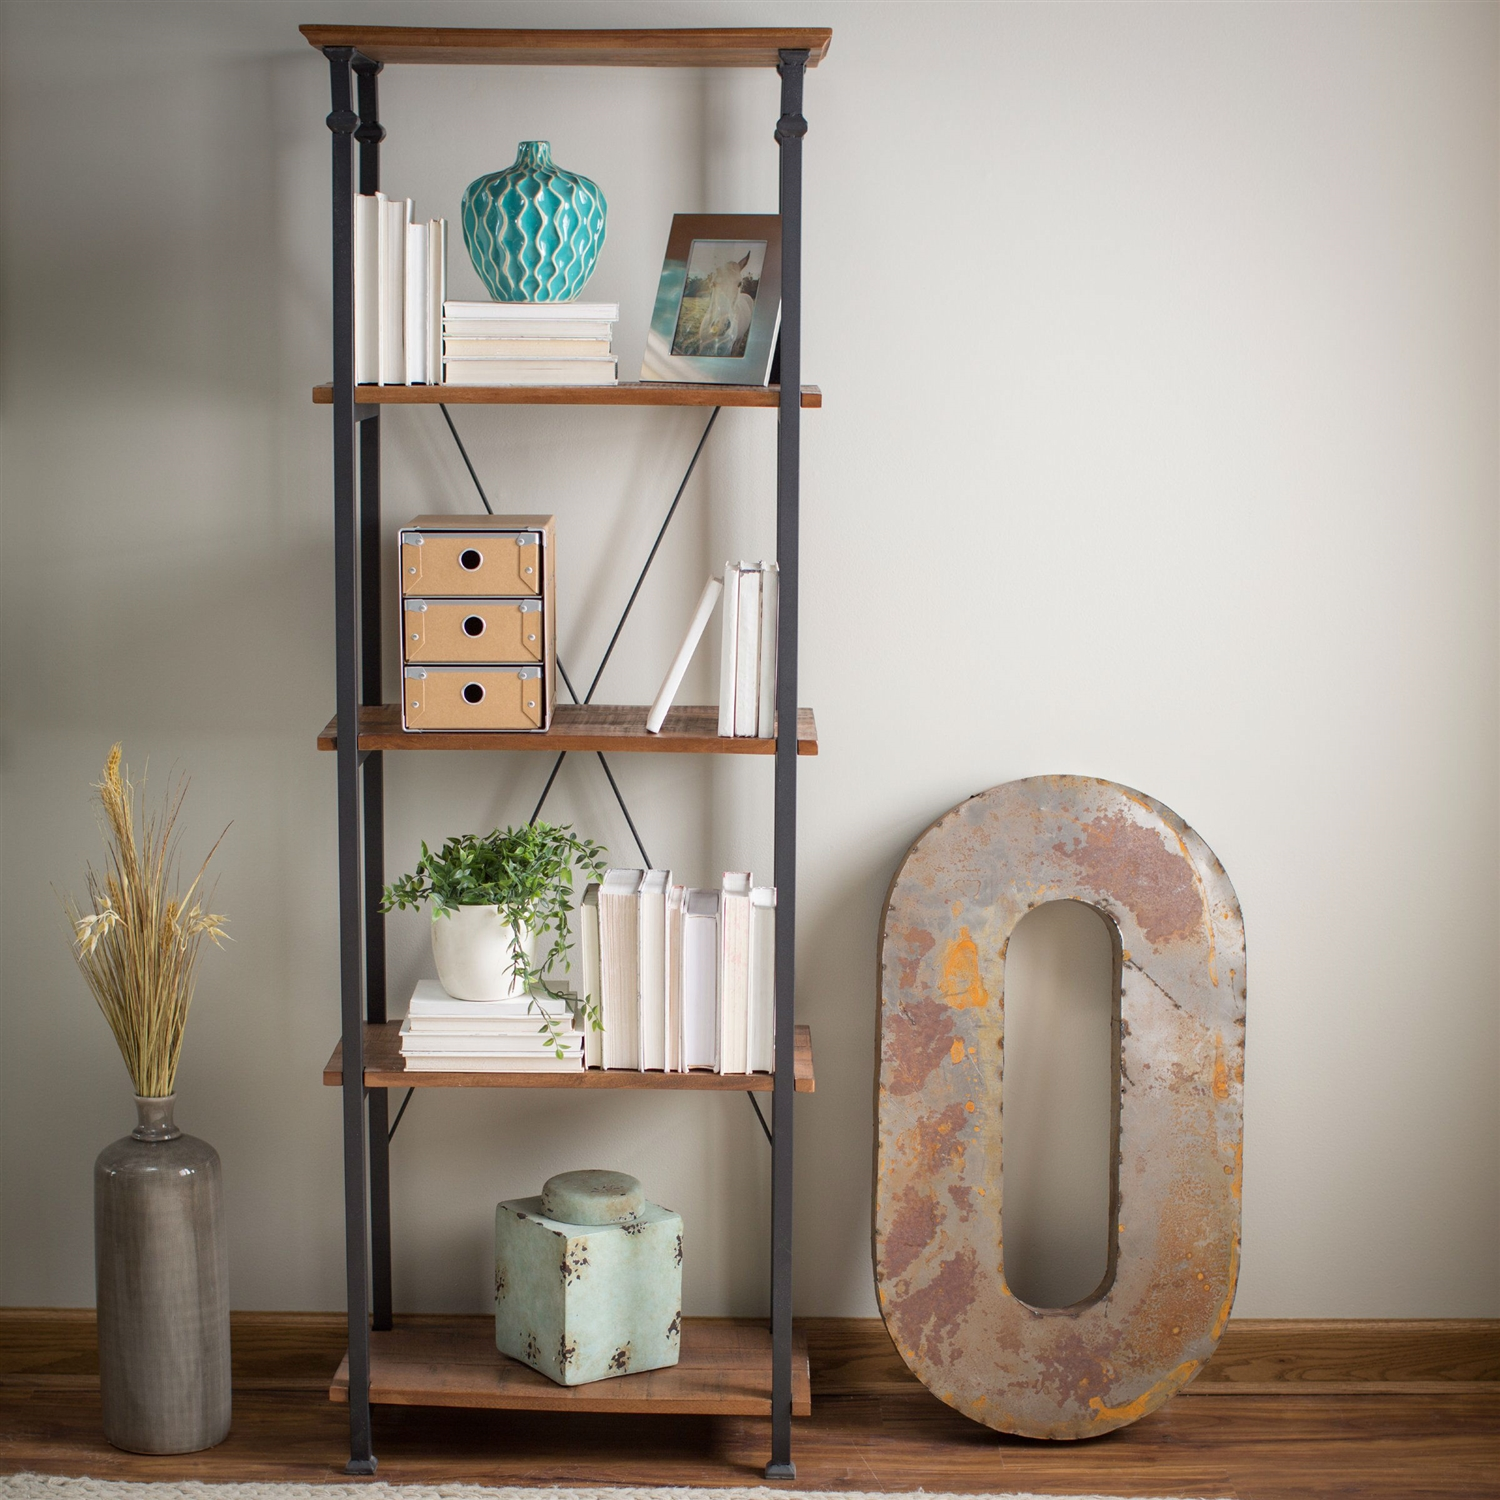 Living Room Kitchen Storage 4-Shelf Bookcase Bookshelf